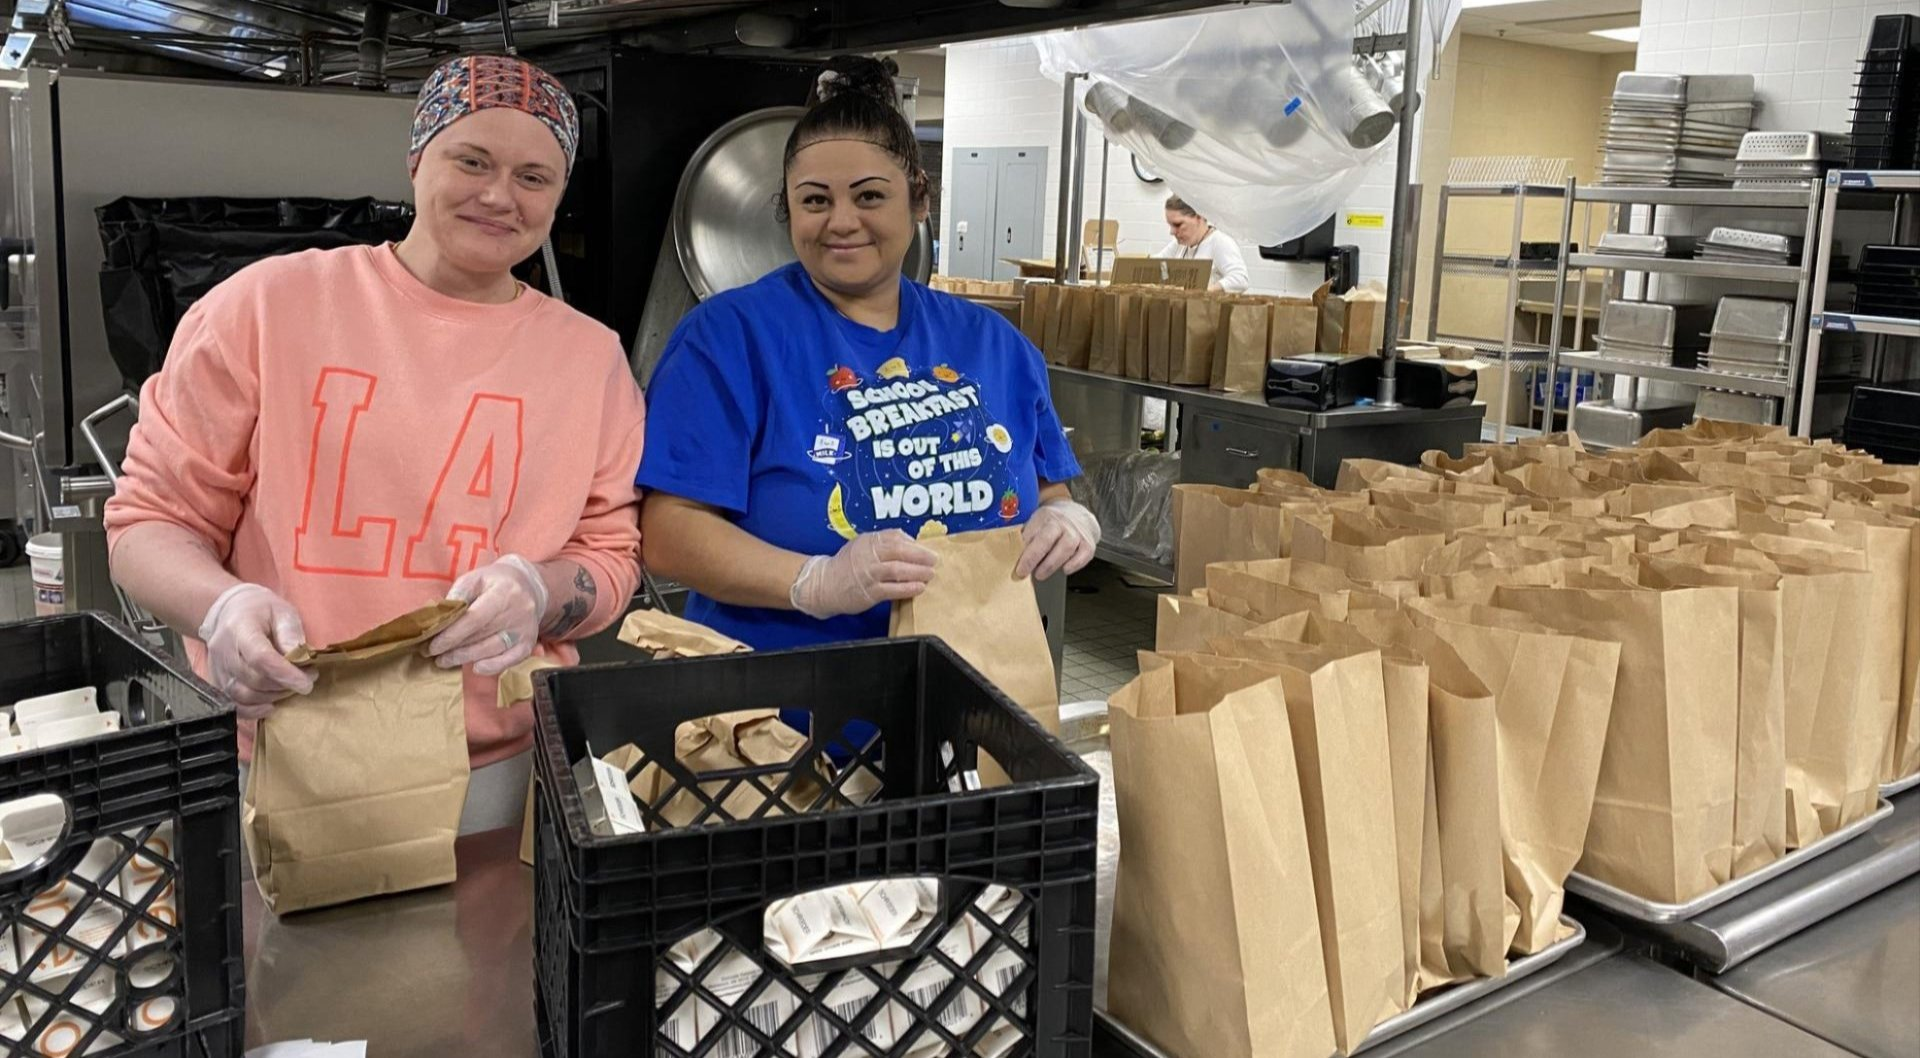 Nutritional Services staff bagging lunches